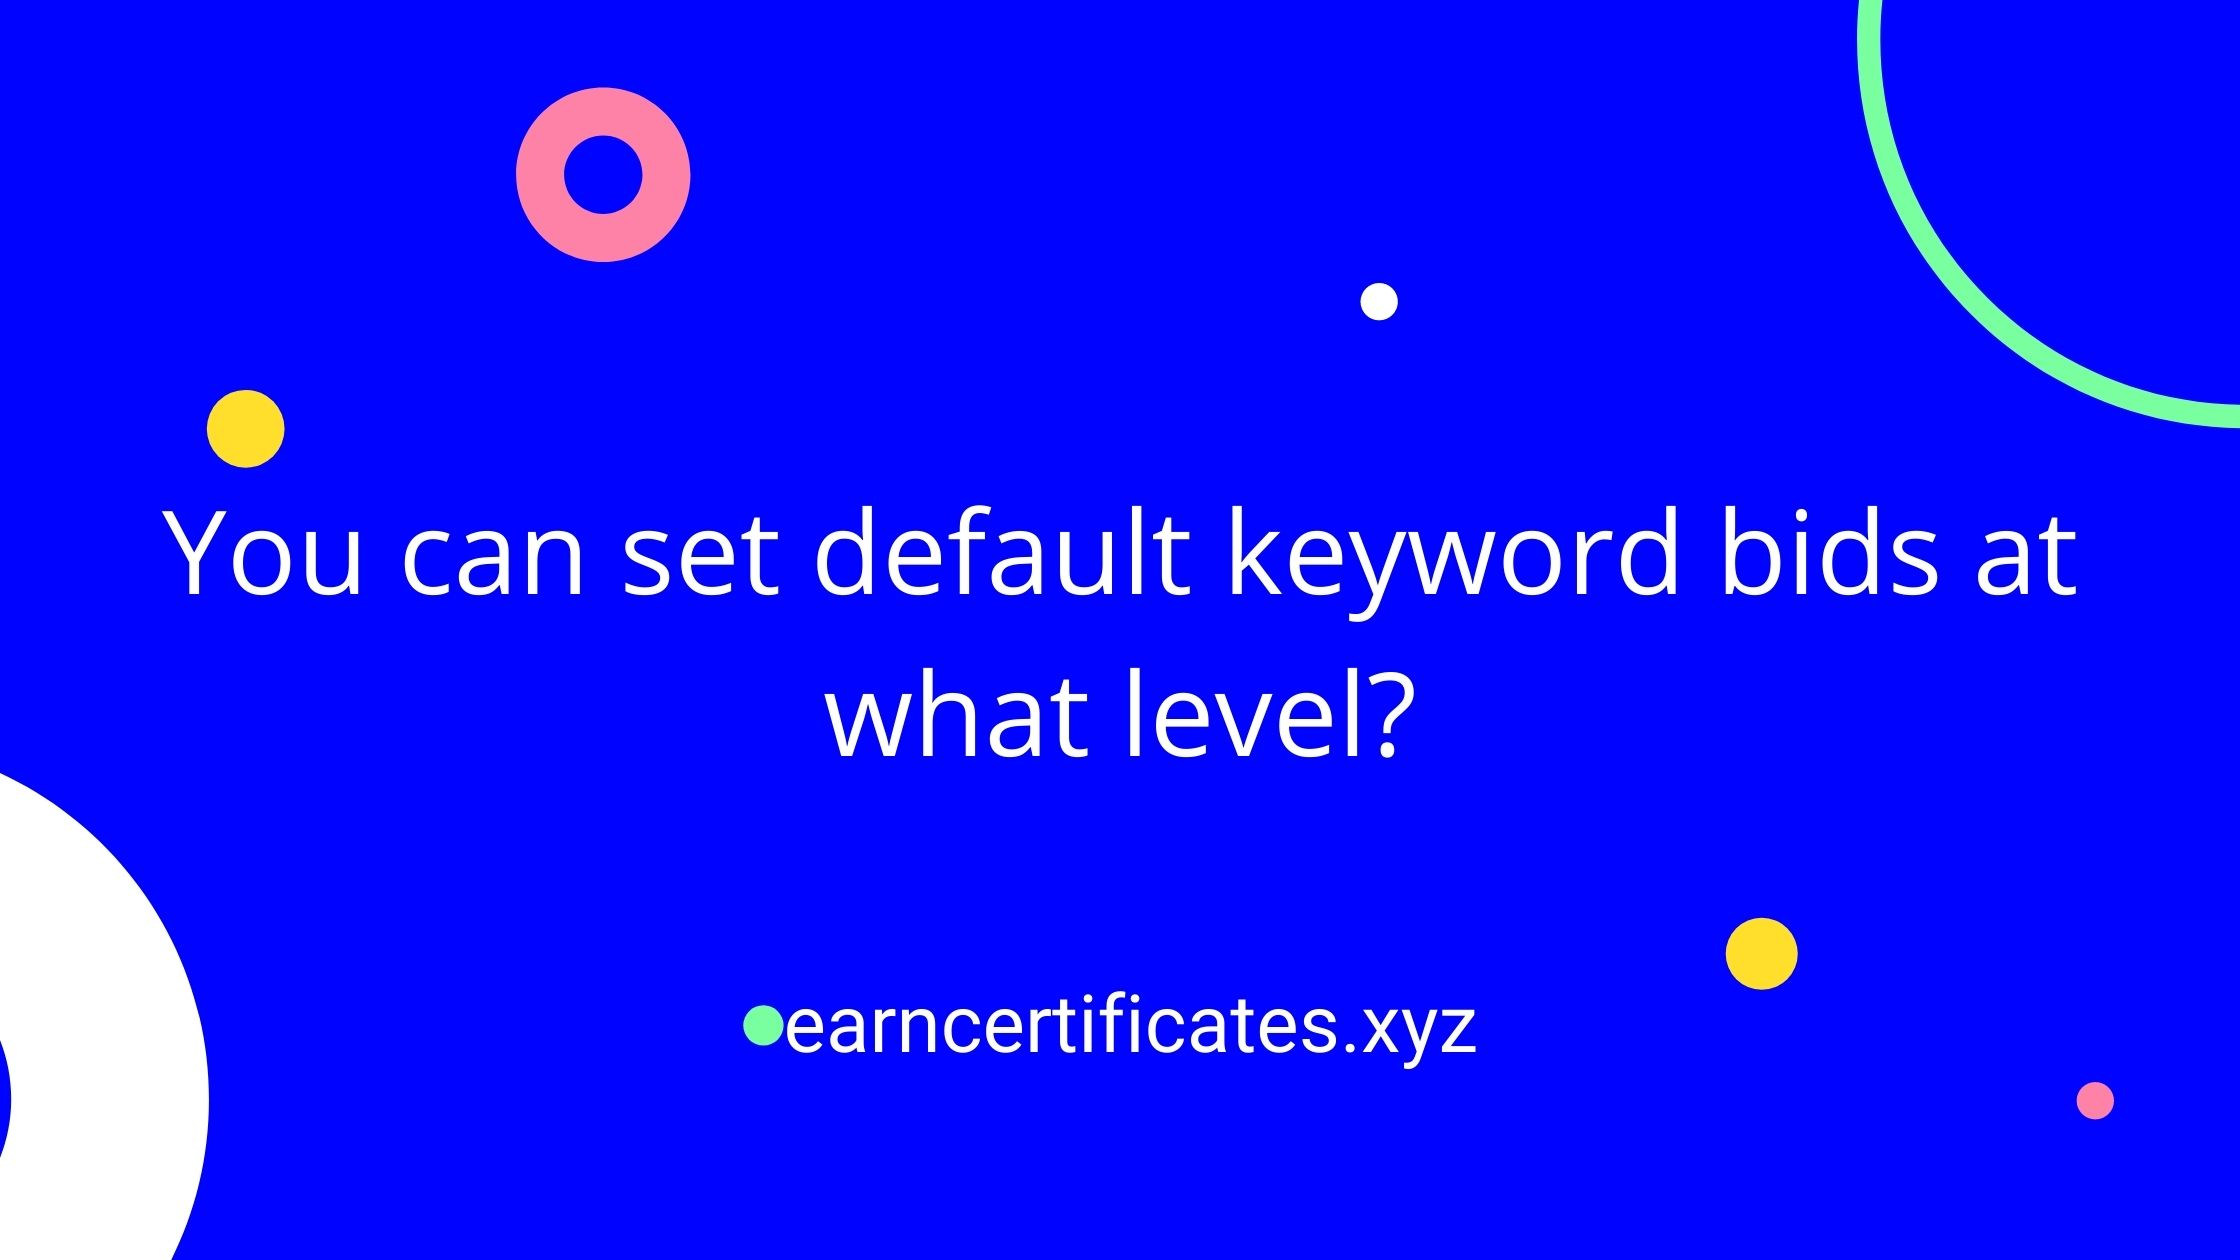 You can set default keyword bids at what level?